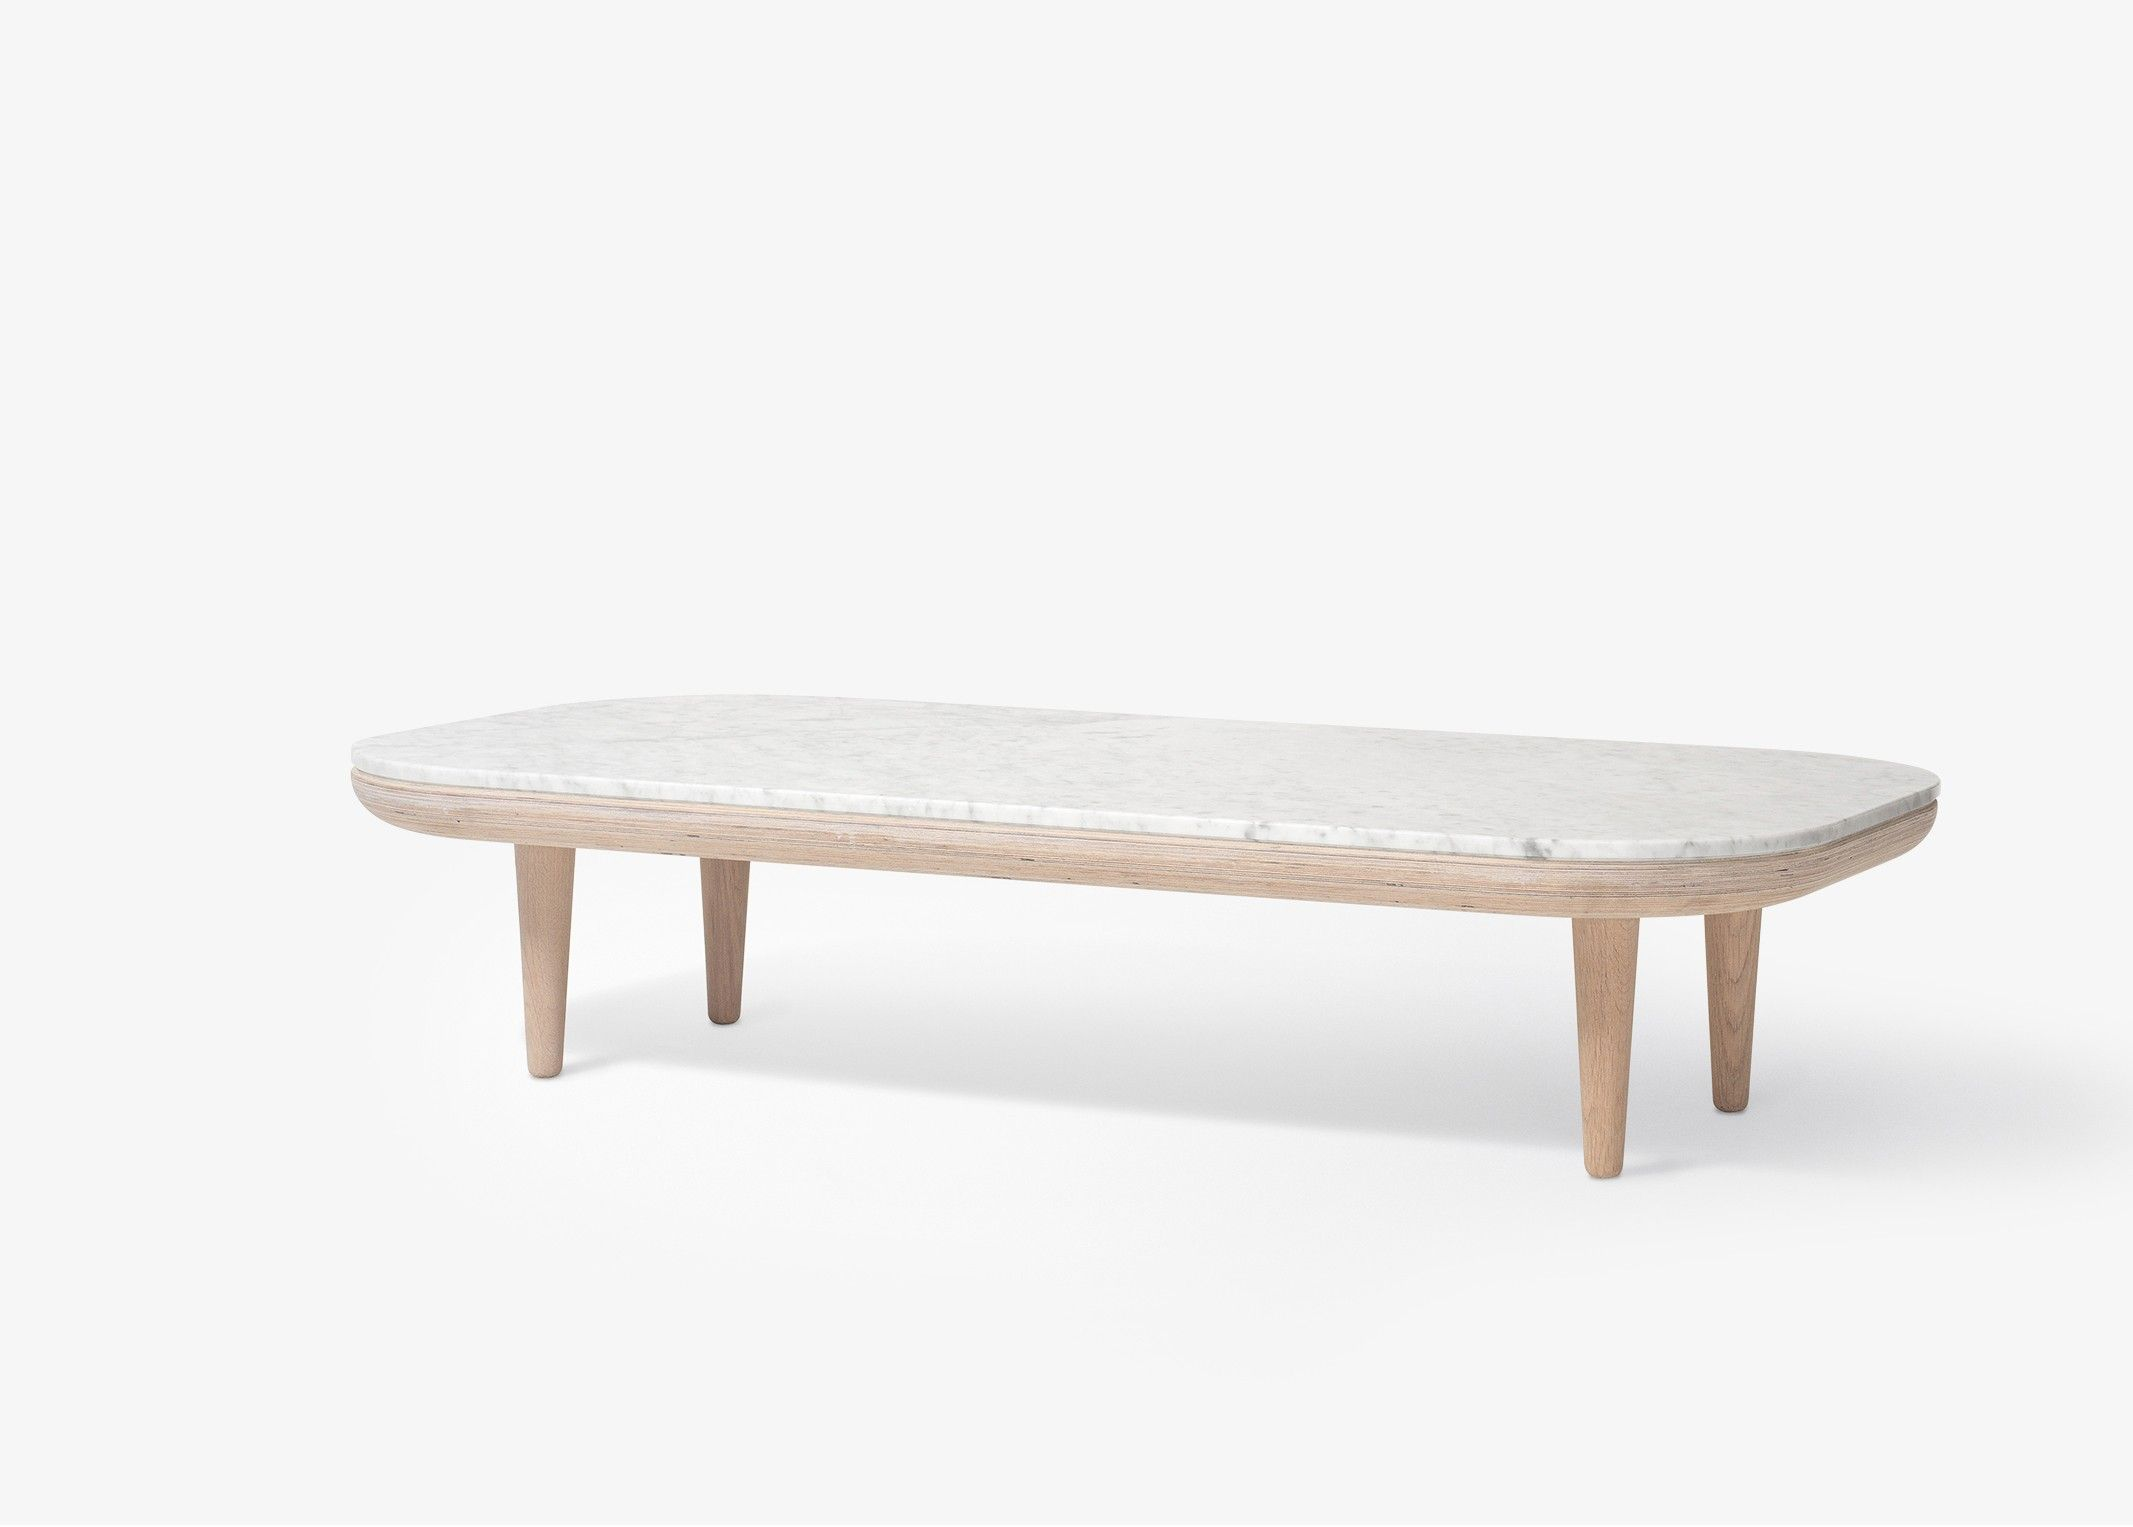 Permalink to Meilleur De De Table Basse Blanc